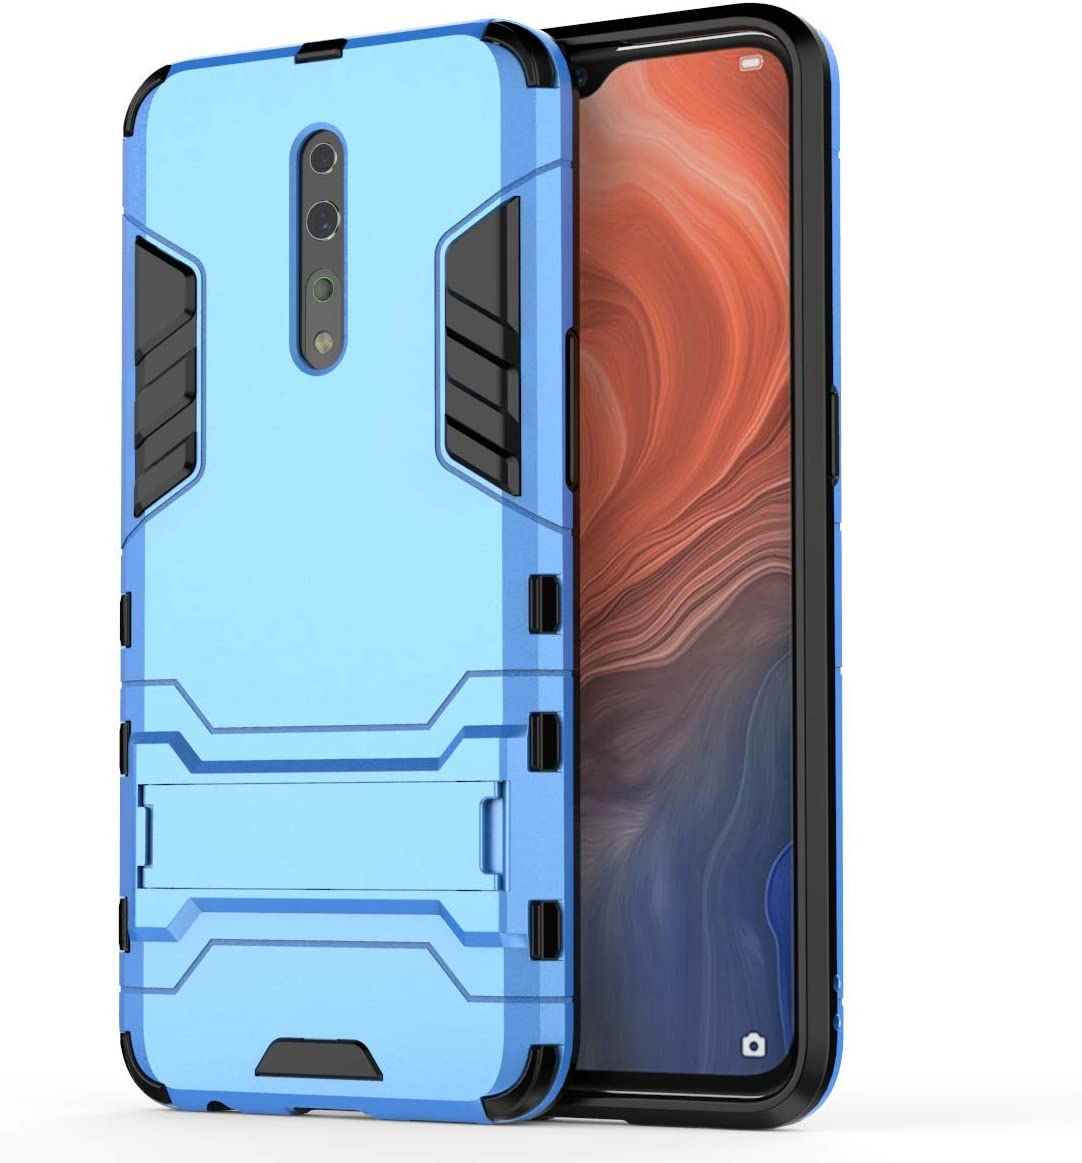 TANYO Phone Case for OPPO Find X2 Pro TPU//PC Hybrid Armor Cover Blue Shockproof Rugged Shell with Kickstand /& Protection Bumper